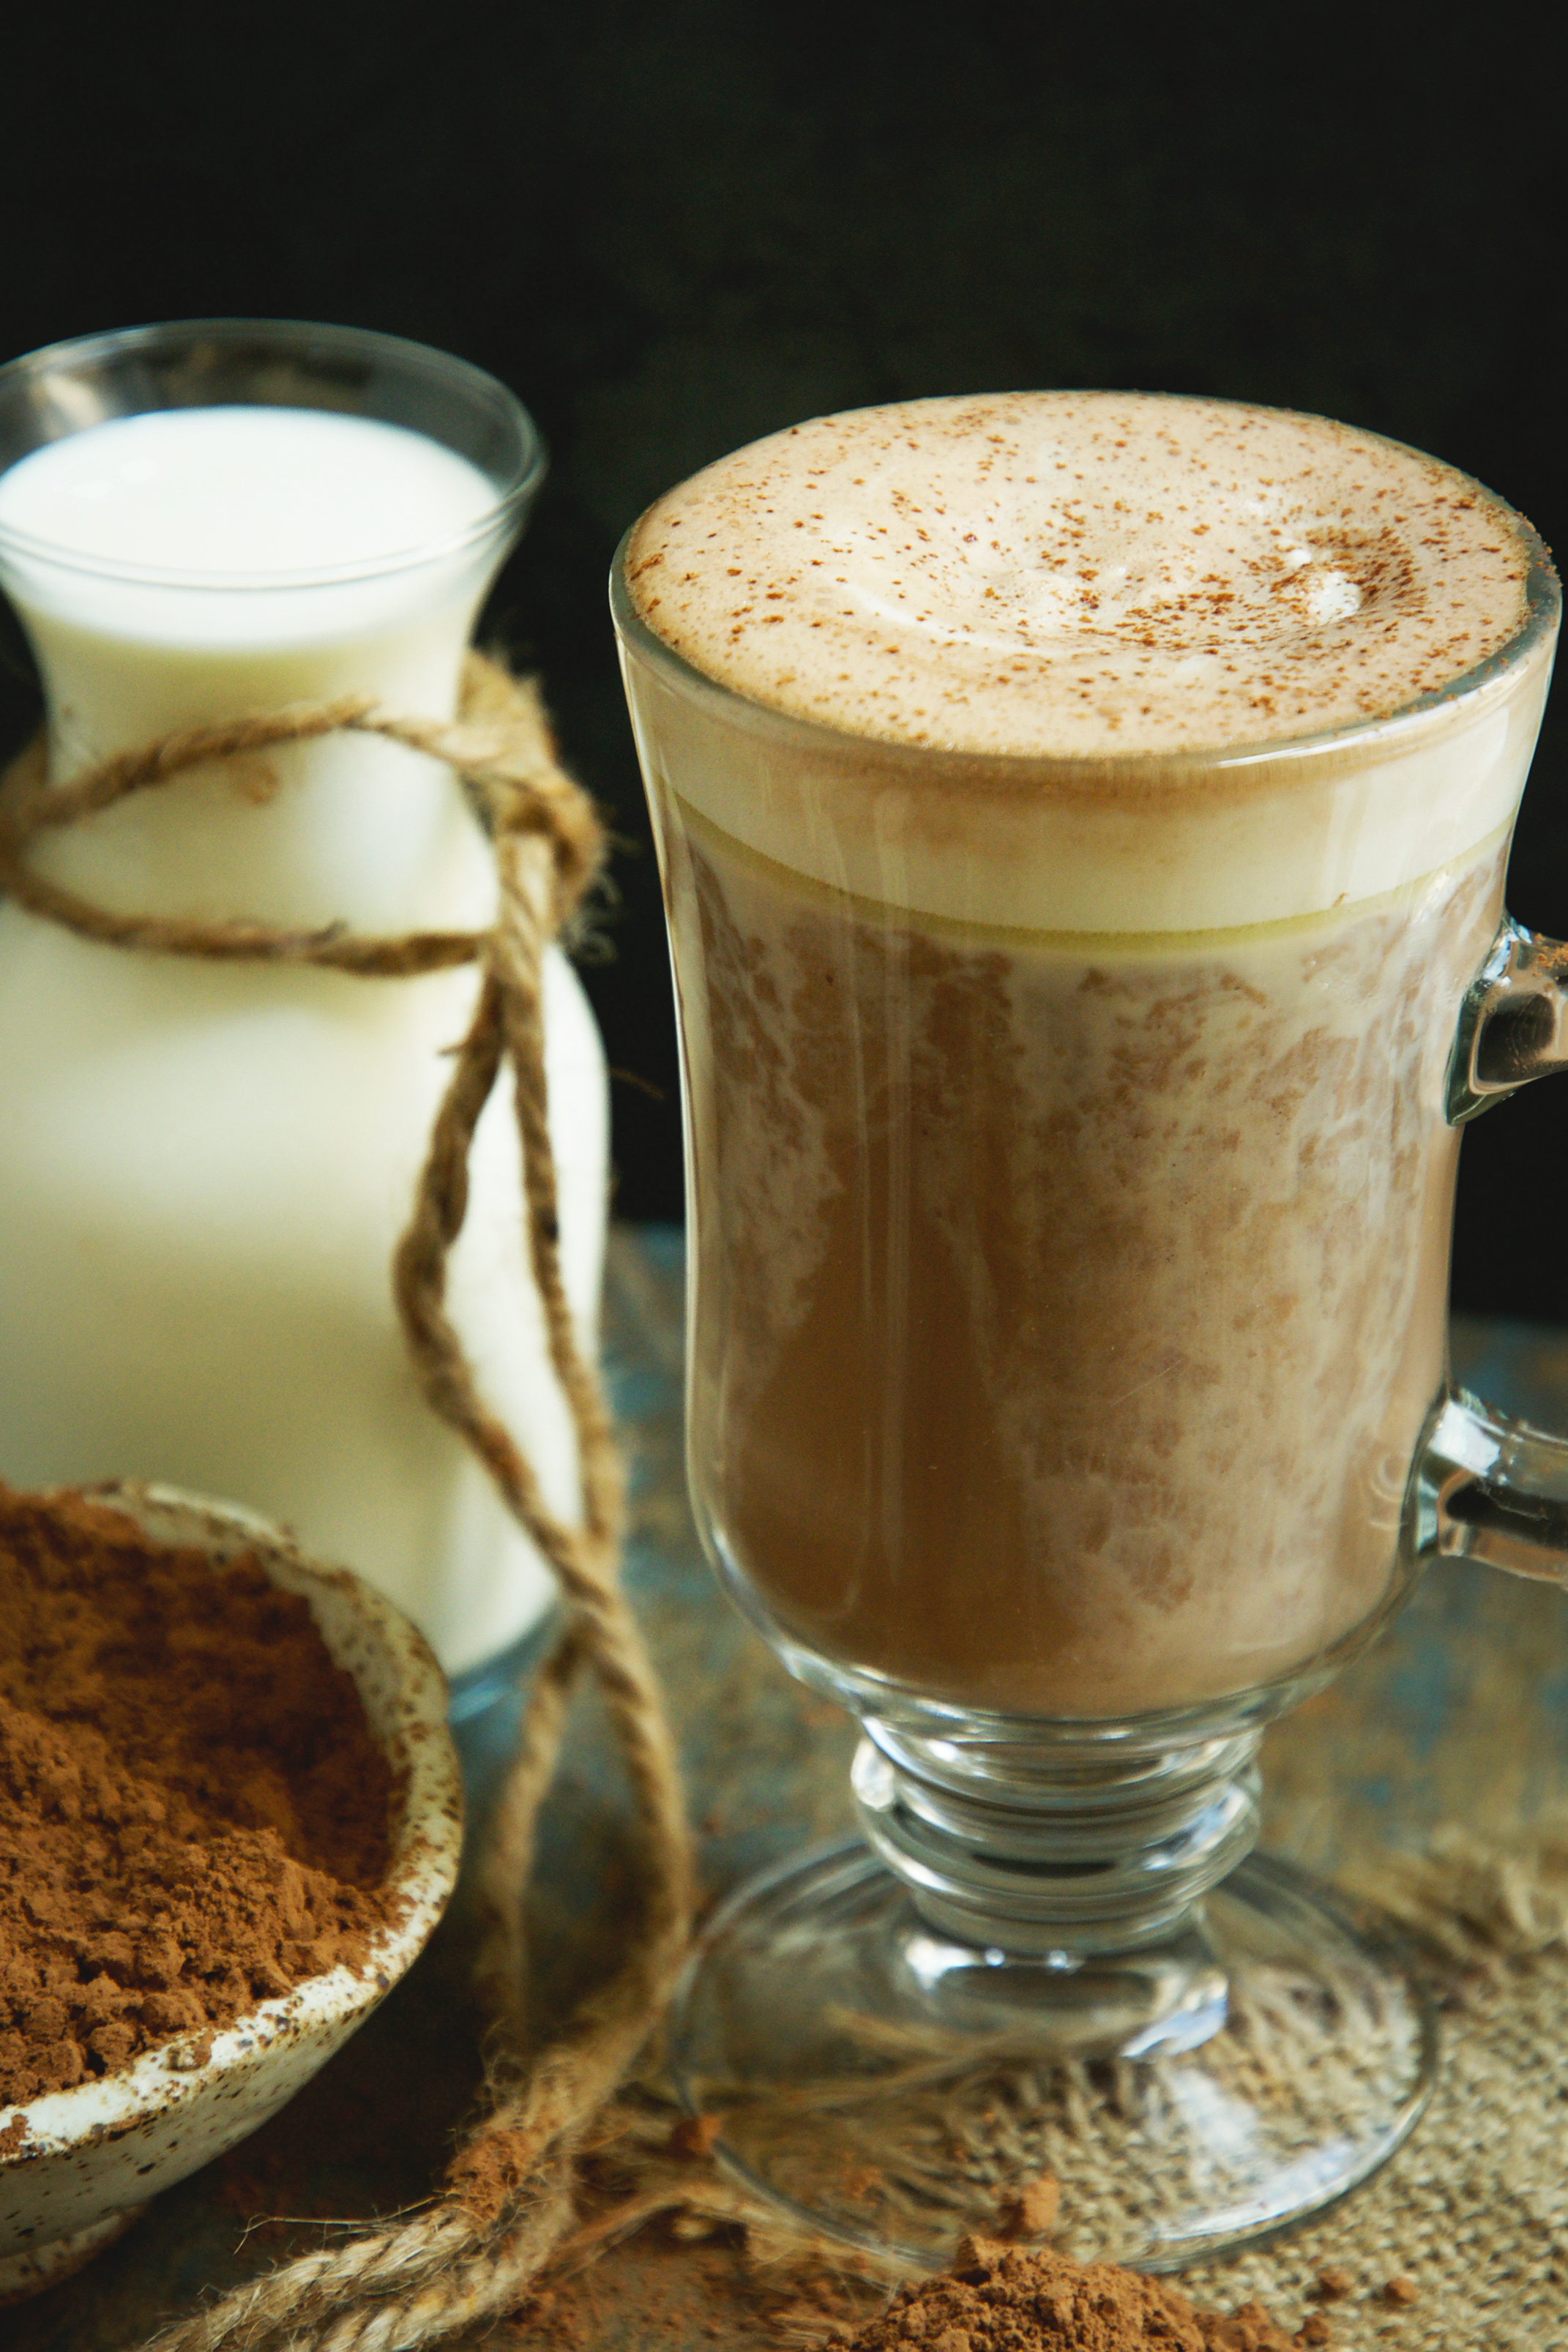 Keto-Friendly Sugar-Free Hot Chocolate Recipe -Topped with whipped Cream